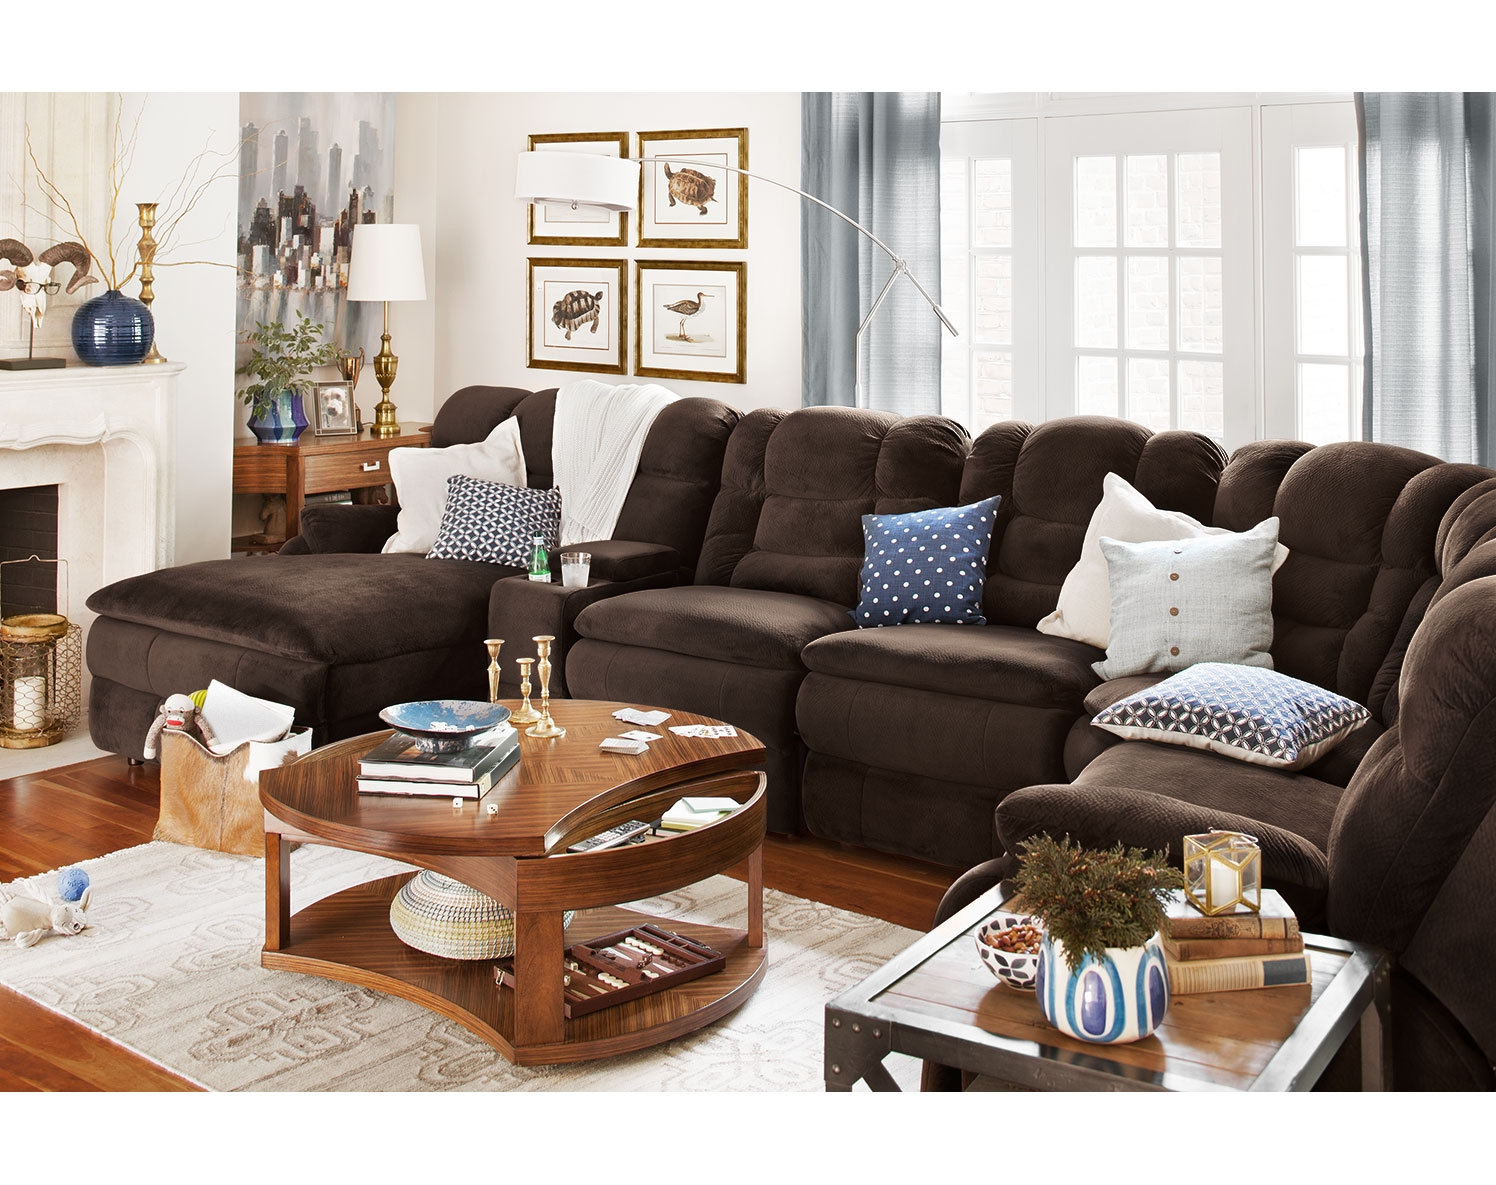 Living rooms, bedrooms, dining rooms, reclining furniture, mattresses, home décor, accents, accessories, sectionals, sofas and couches at everyday low prices. Visit a VCF store near you today.